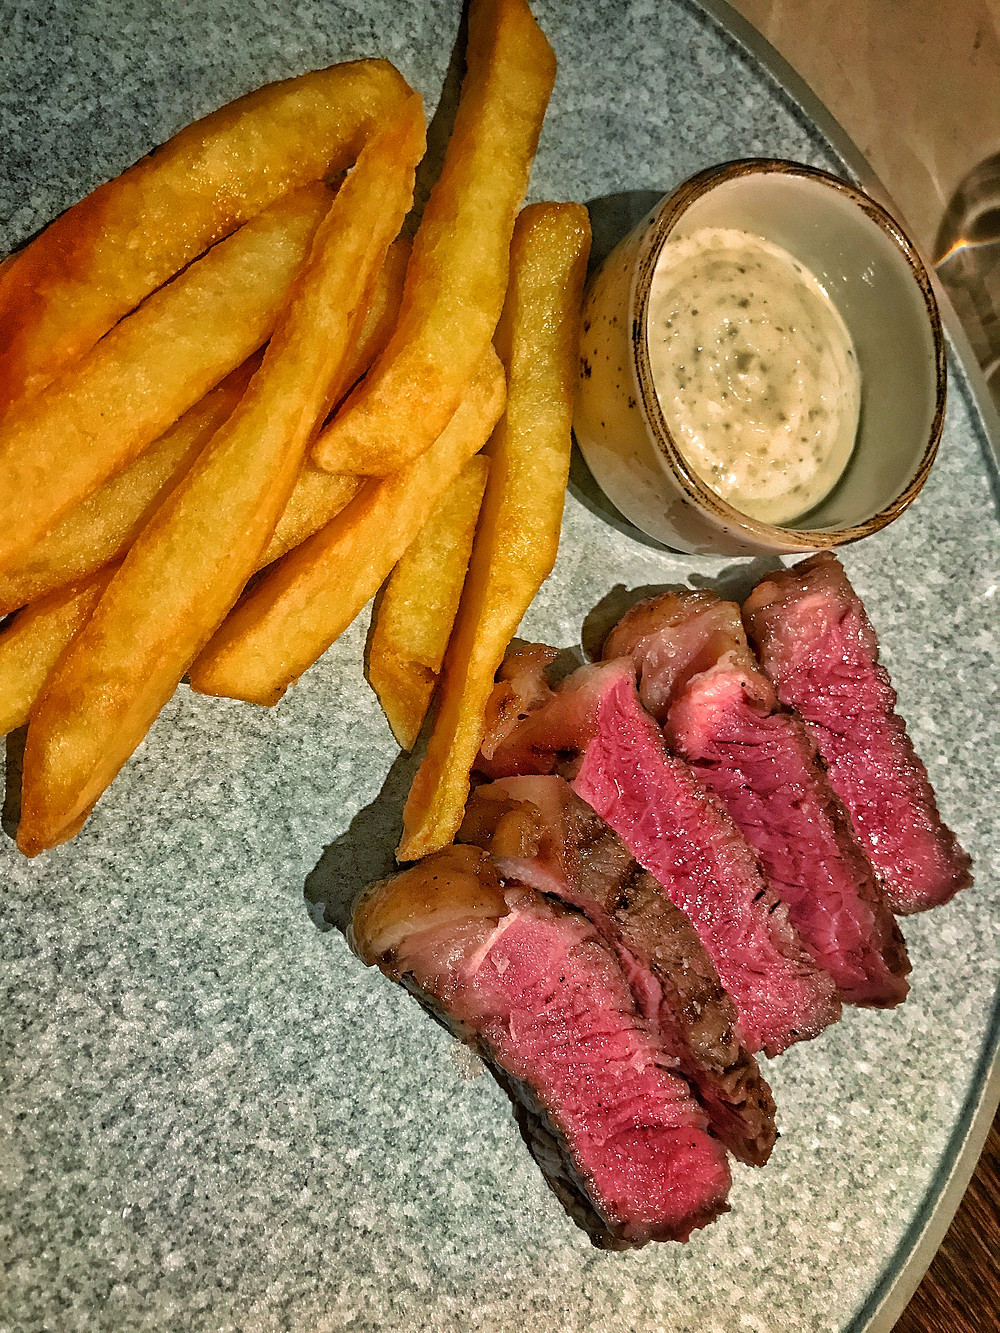 clovar-creative-eastside-bar-and-grill-chippendale-sydney-striplion-steak-handcut-fries-truffle-mayo